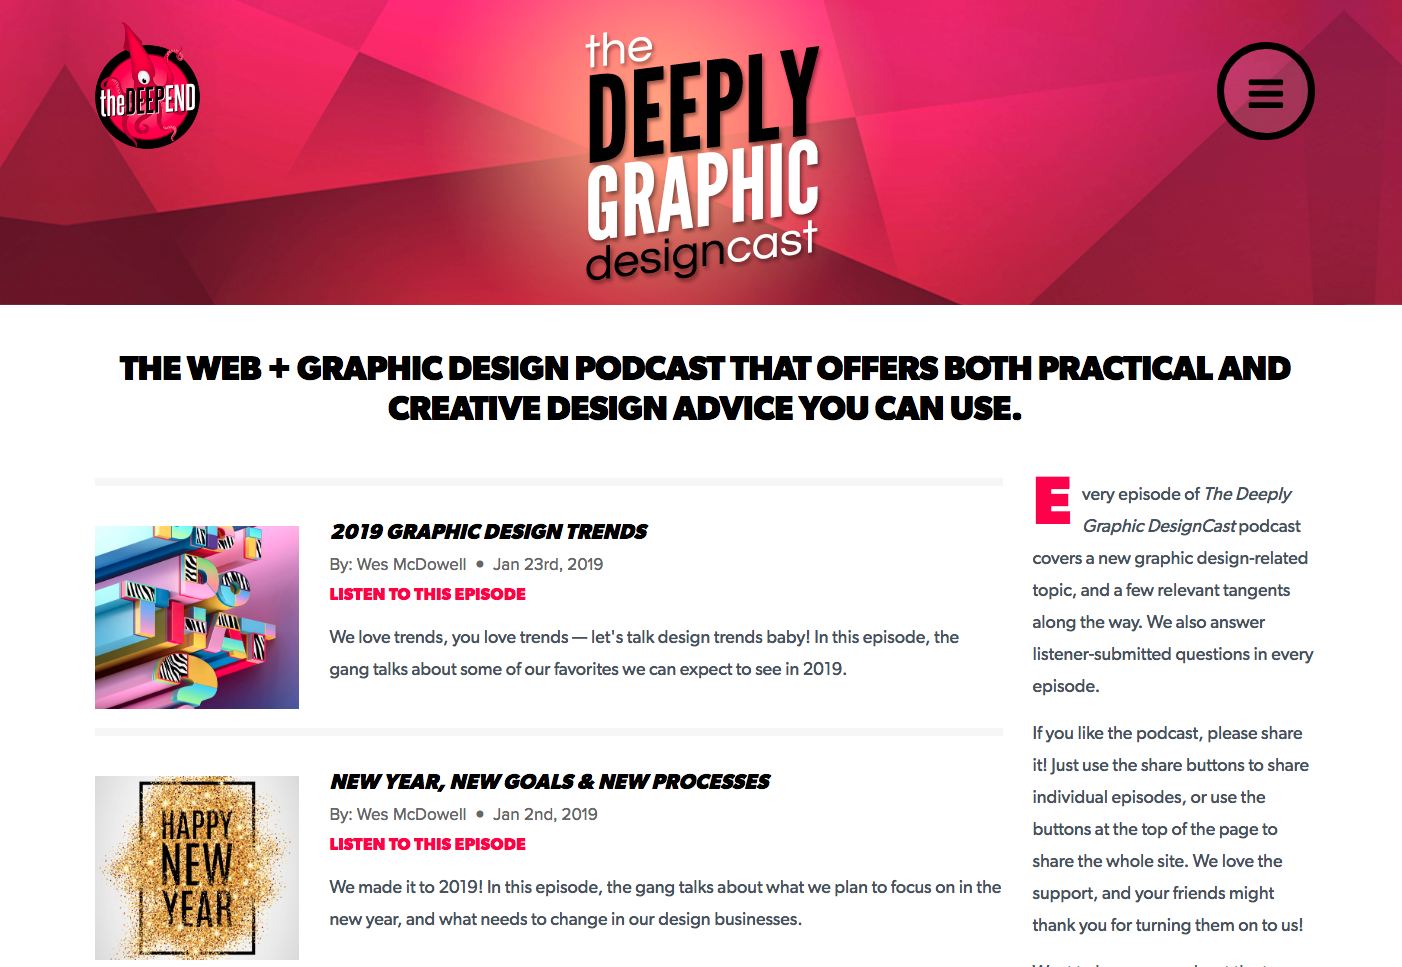 Best Graphic Design Podcasts to Listen to in 2019